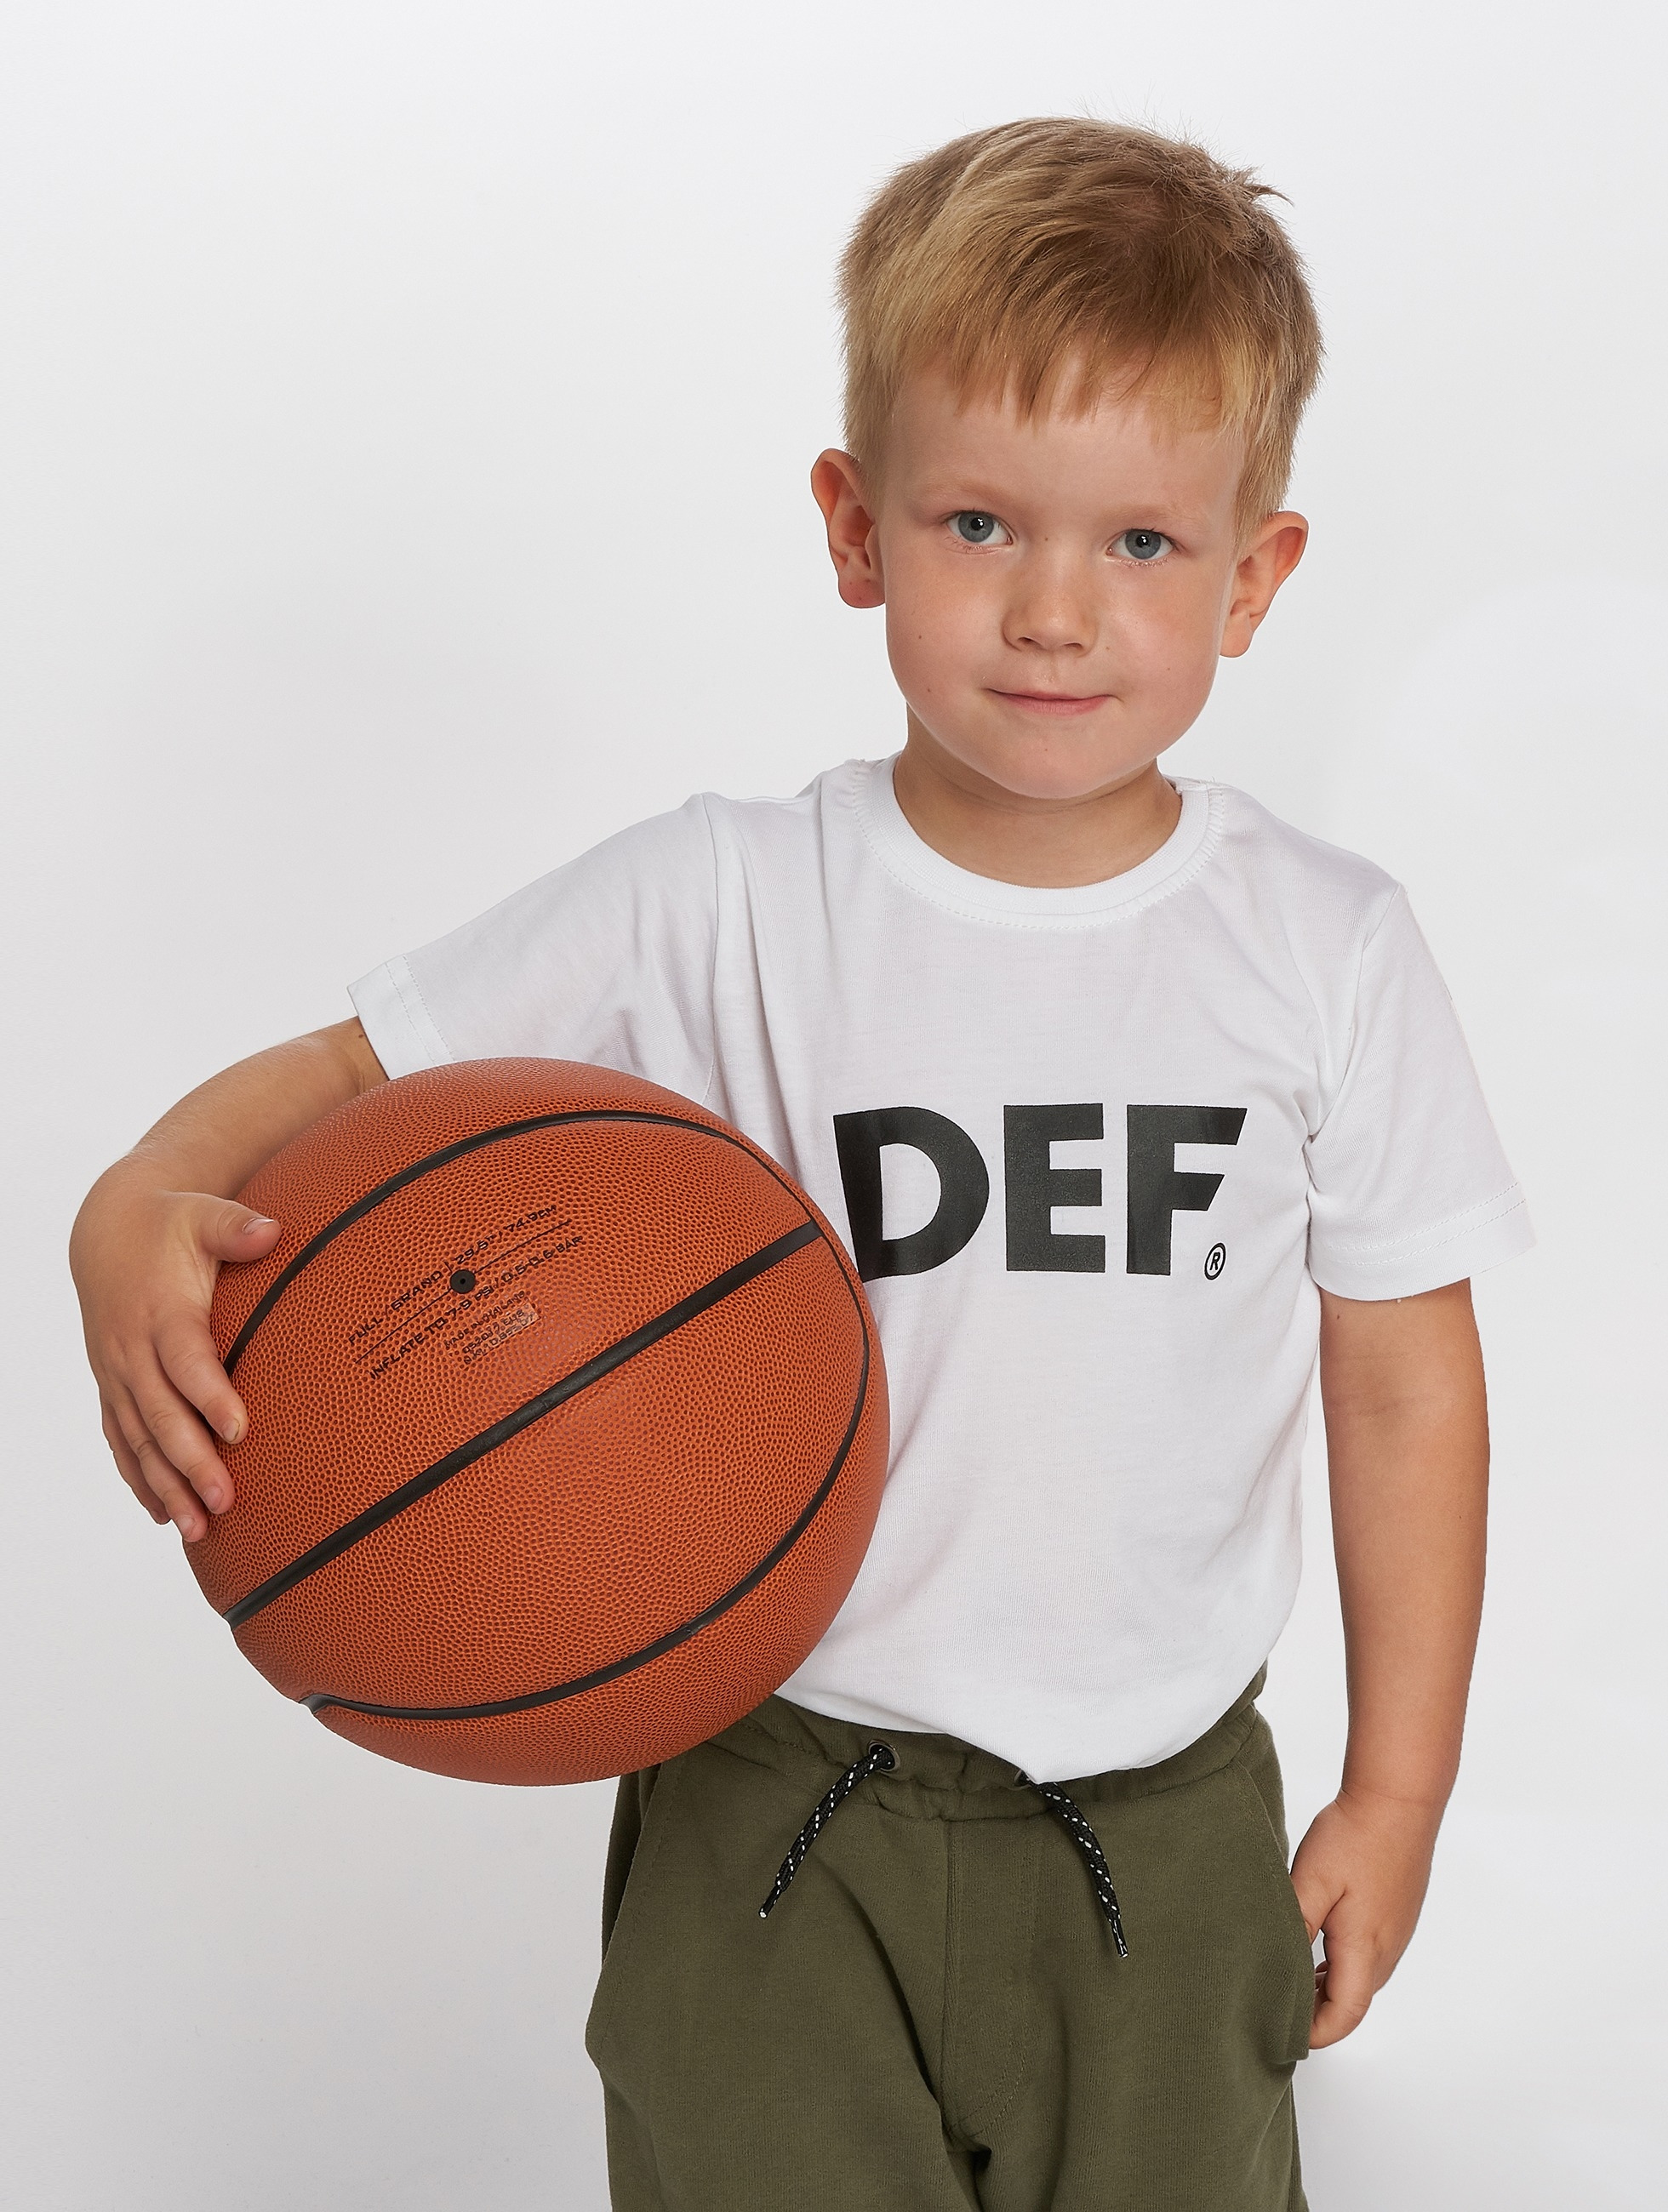 DEF / T-Shirt Sizza in white 98